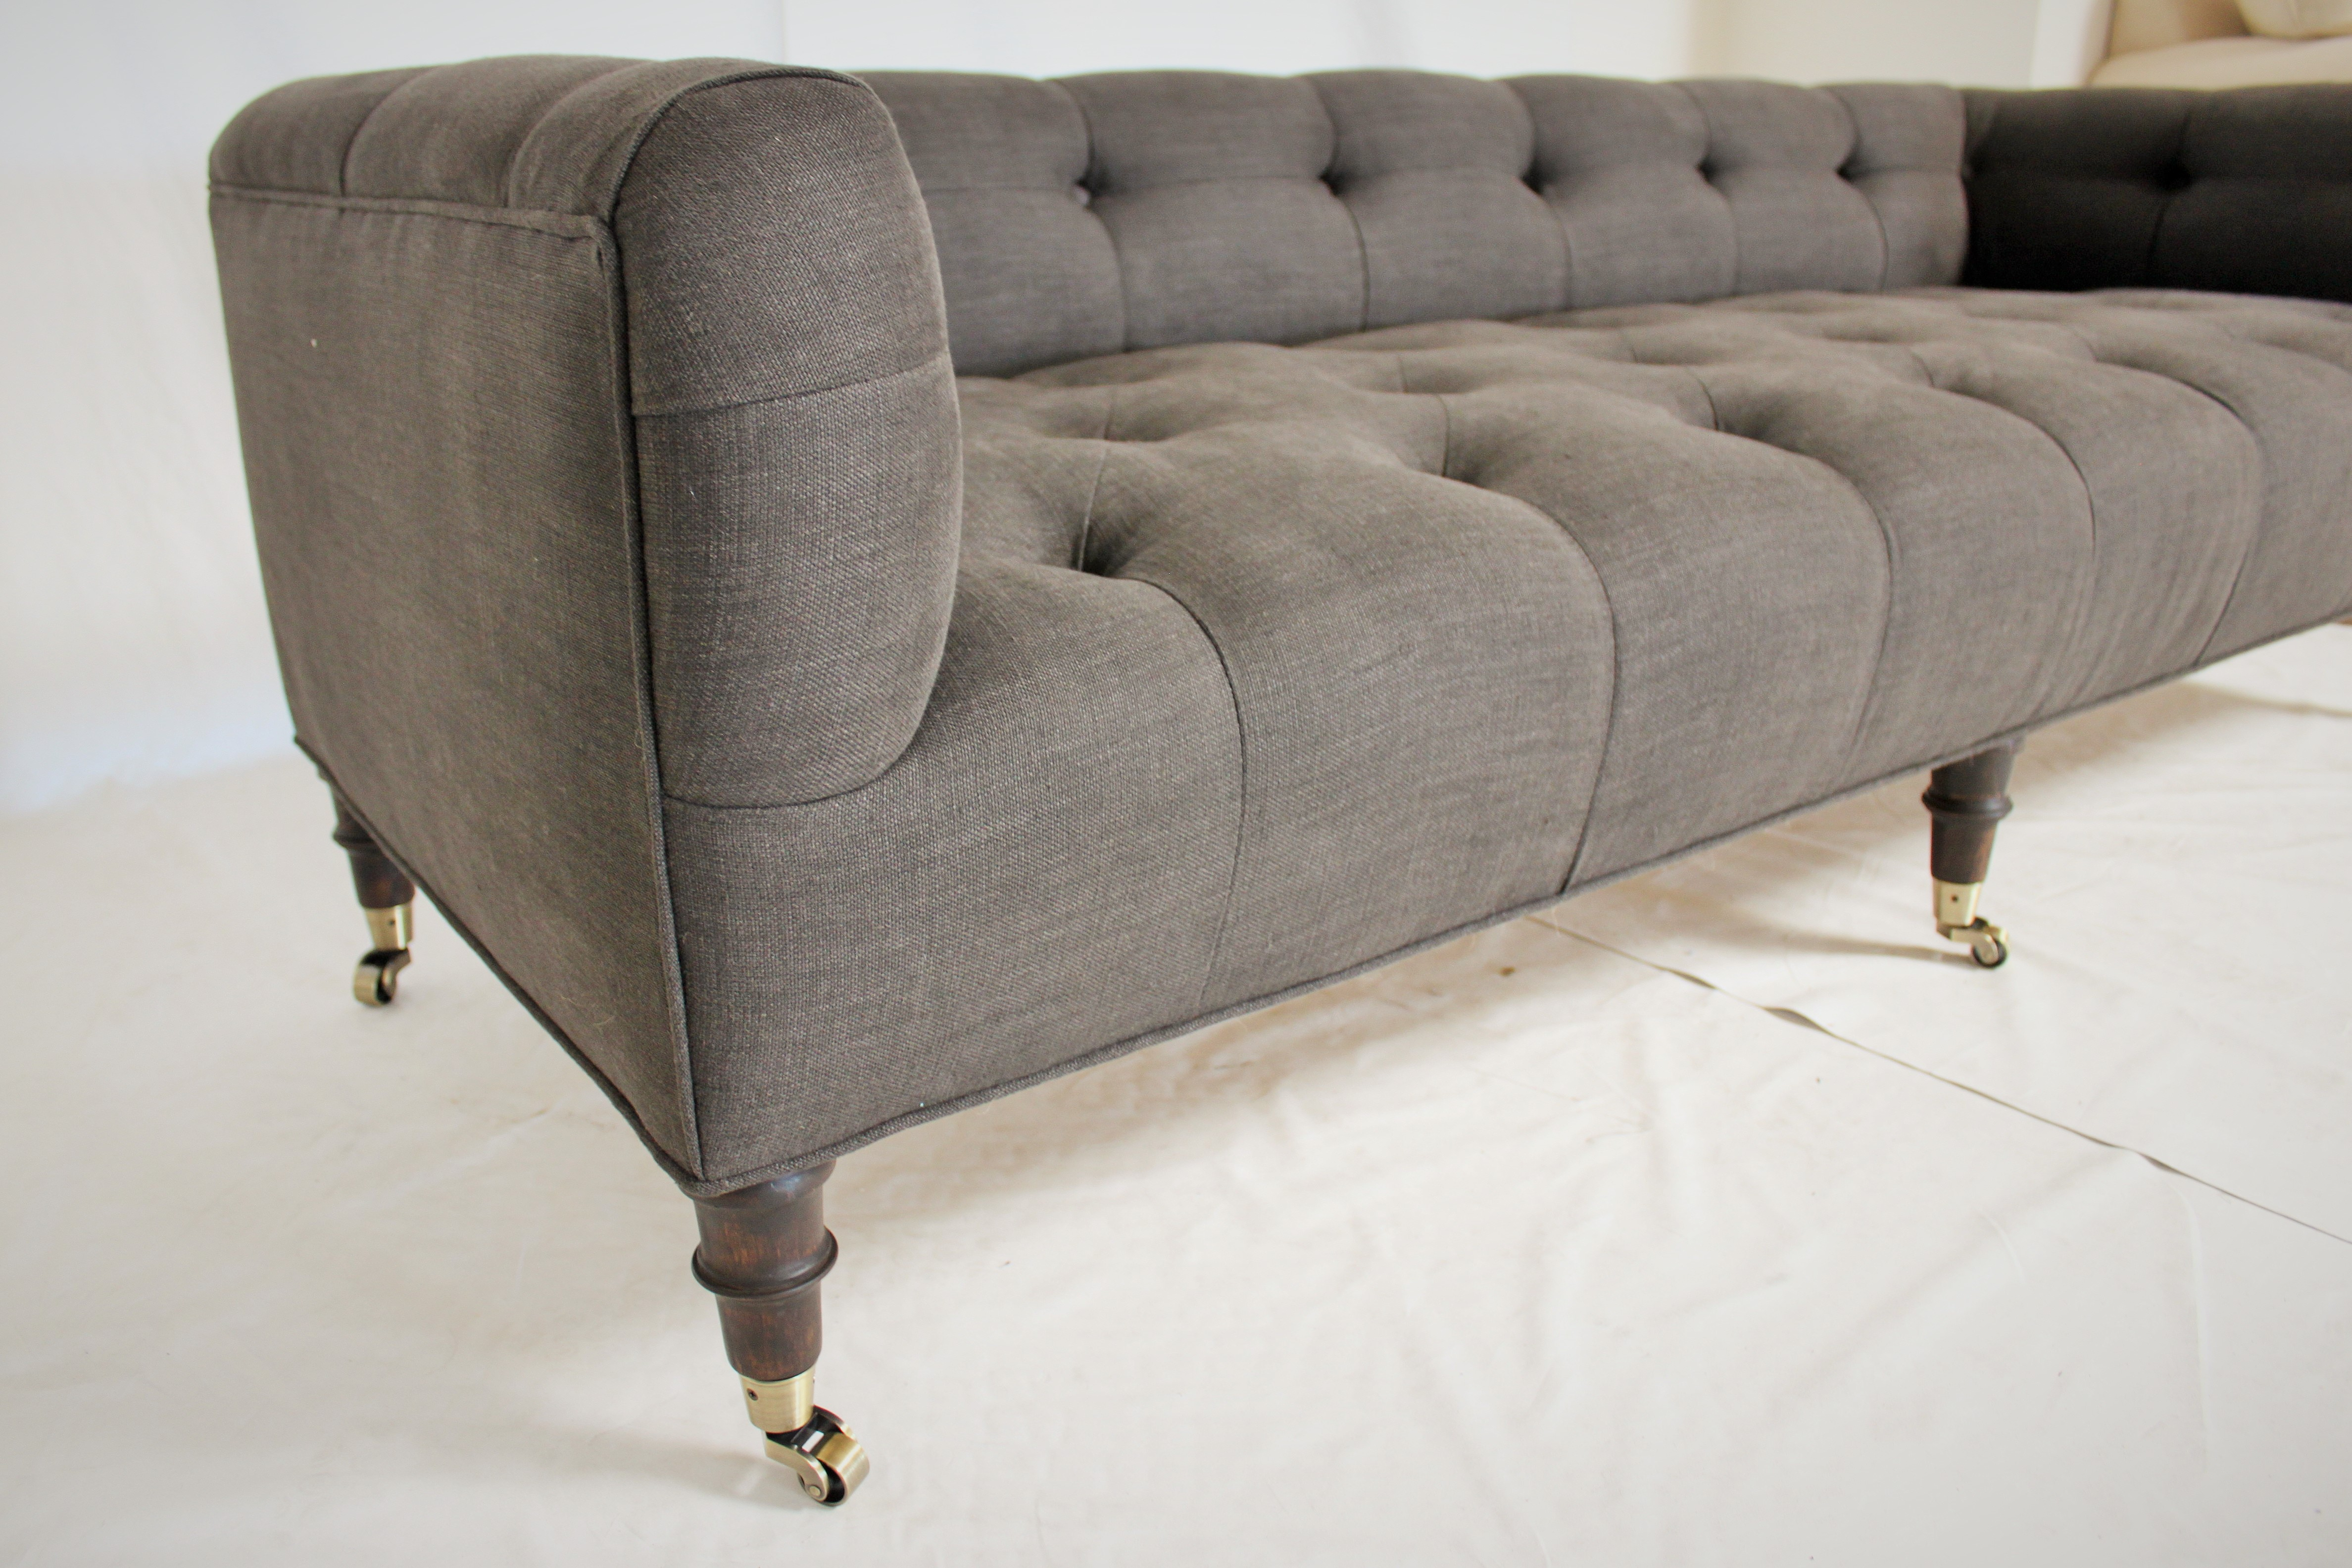 Sofa Bench With Decorative Casters